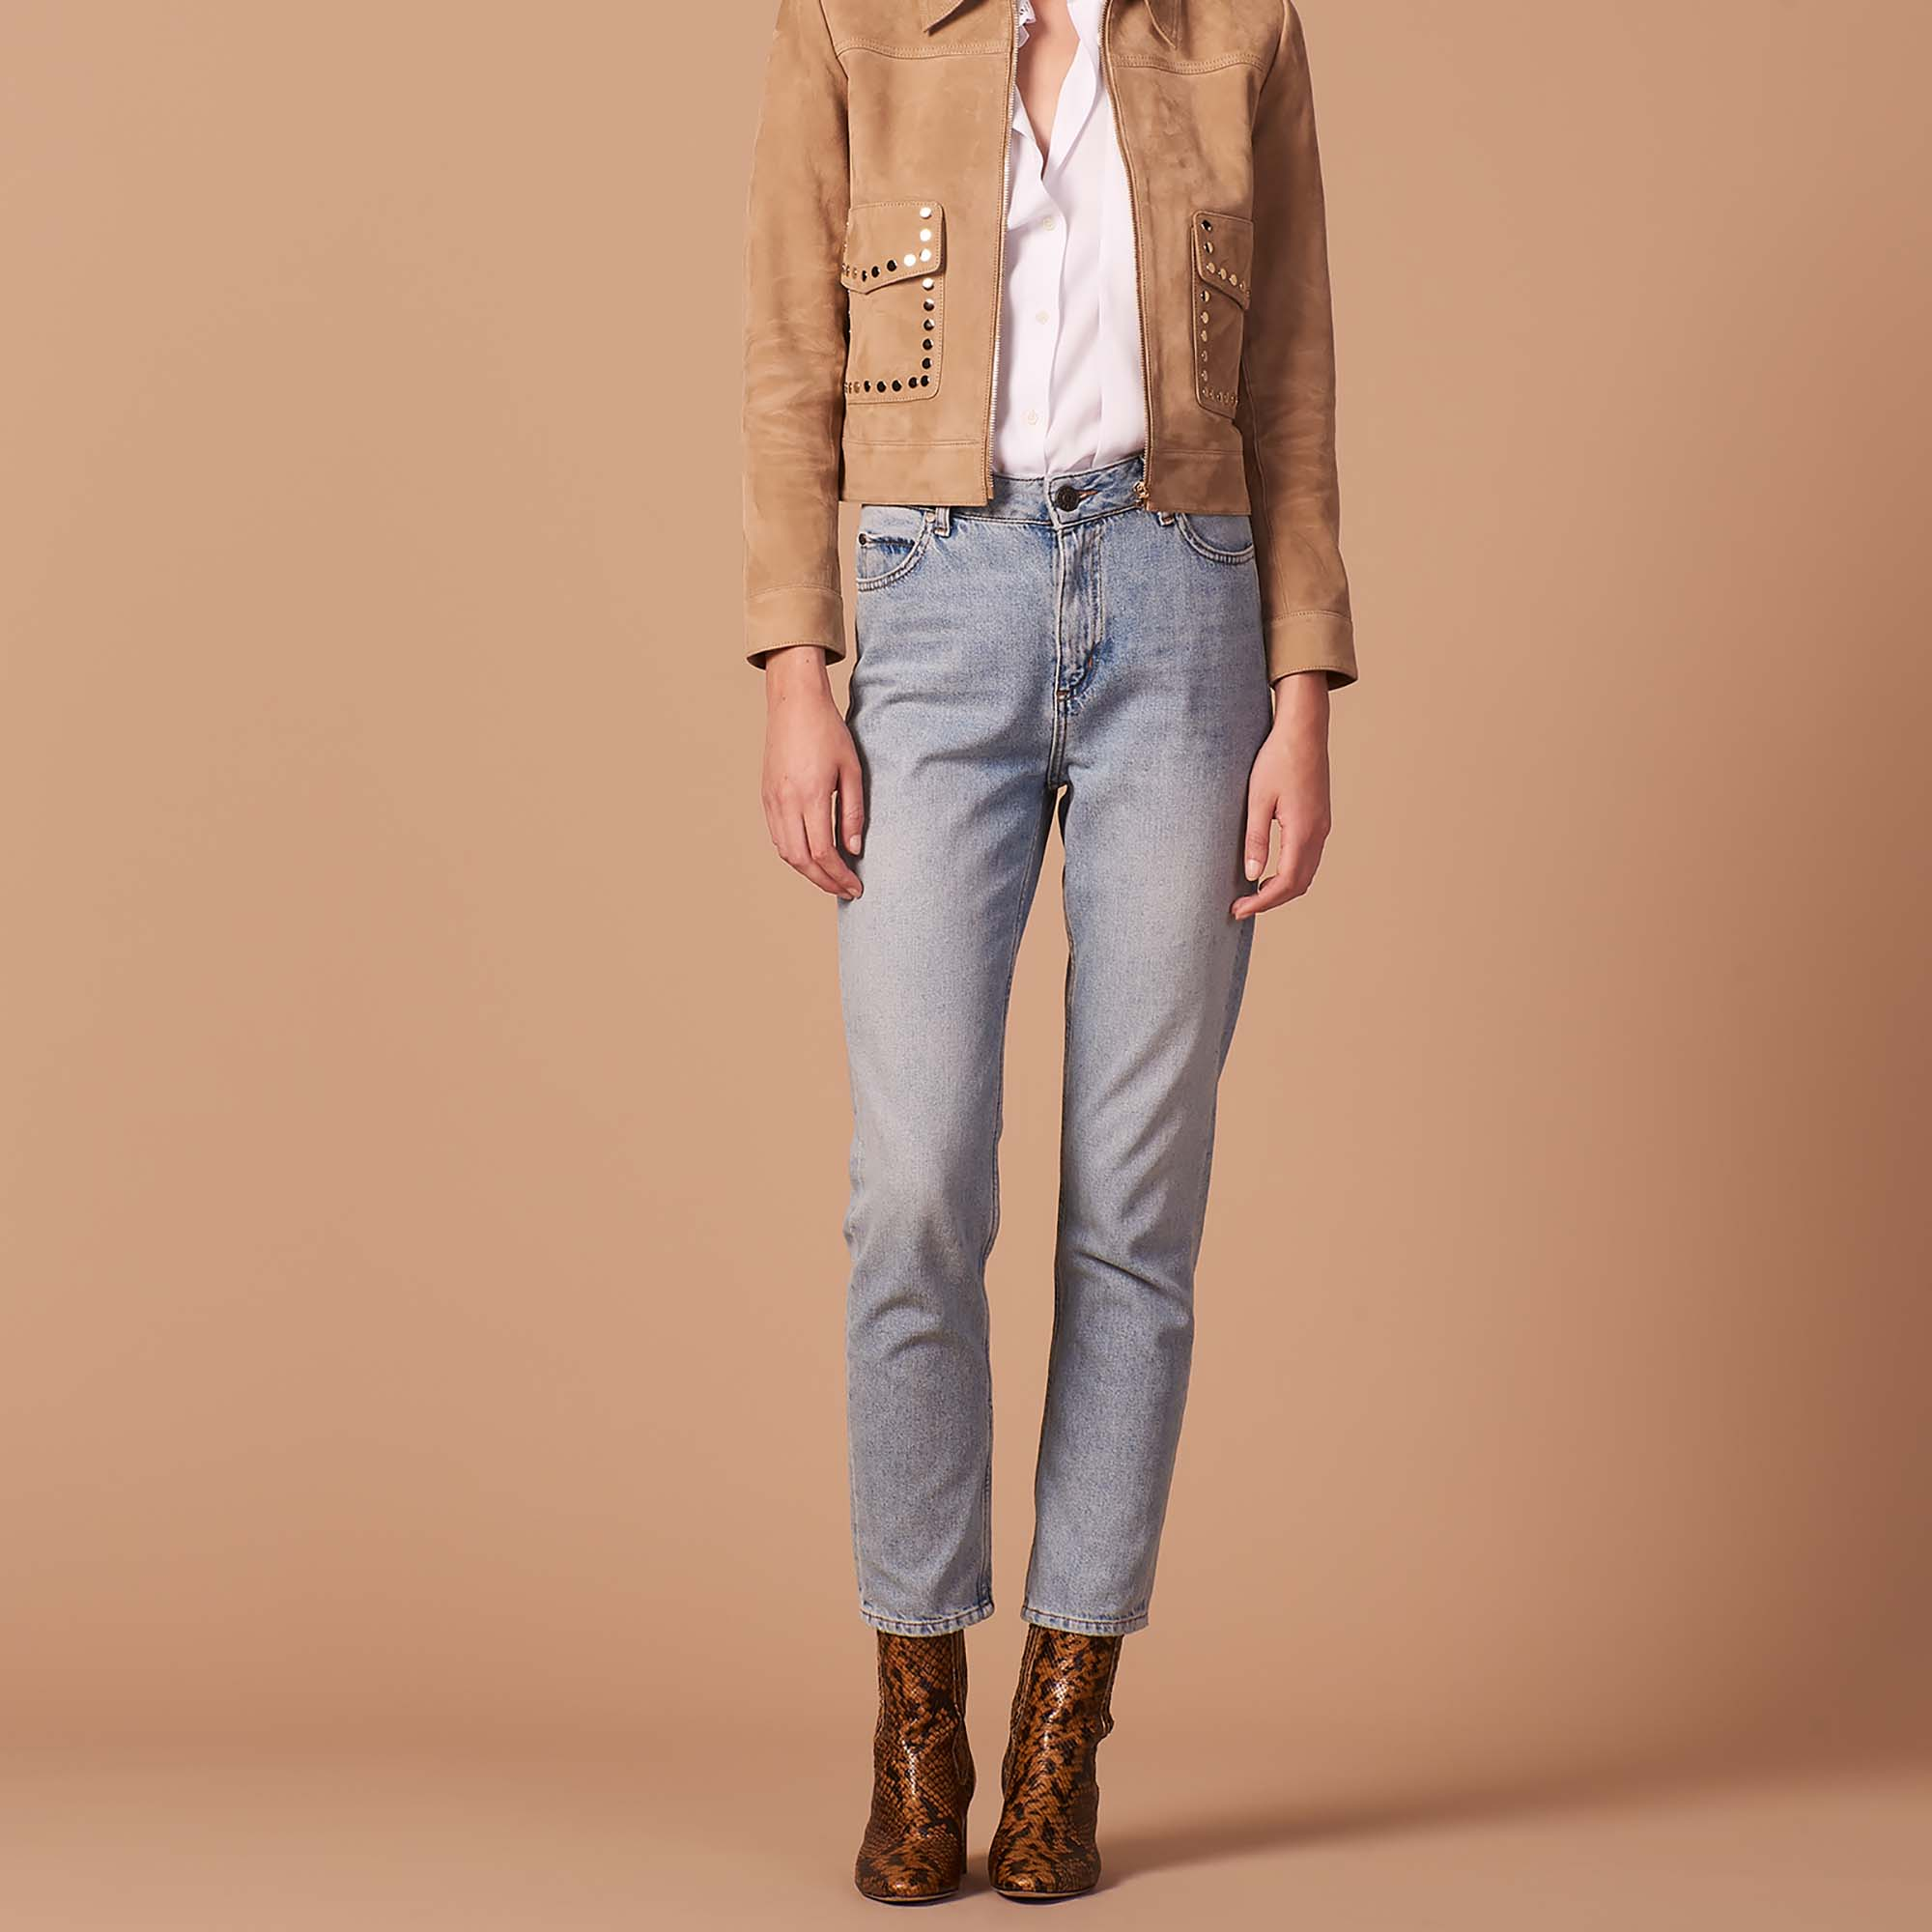 95d5624f532 Suede jacket with studs on the pockets : Jackets color Sand ...